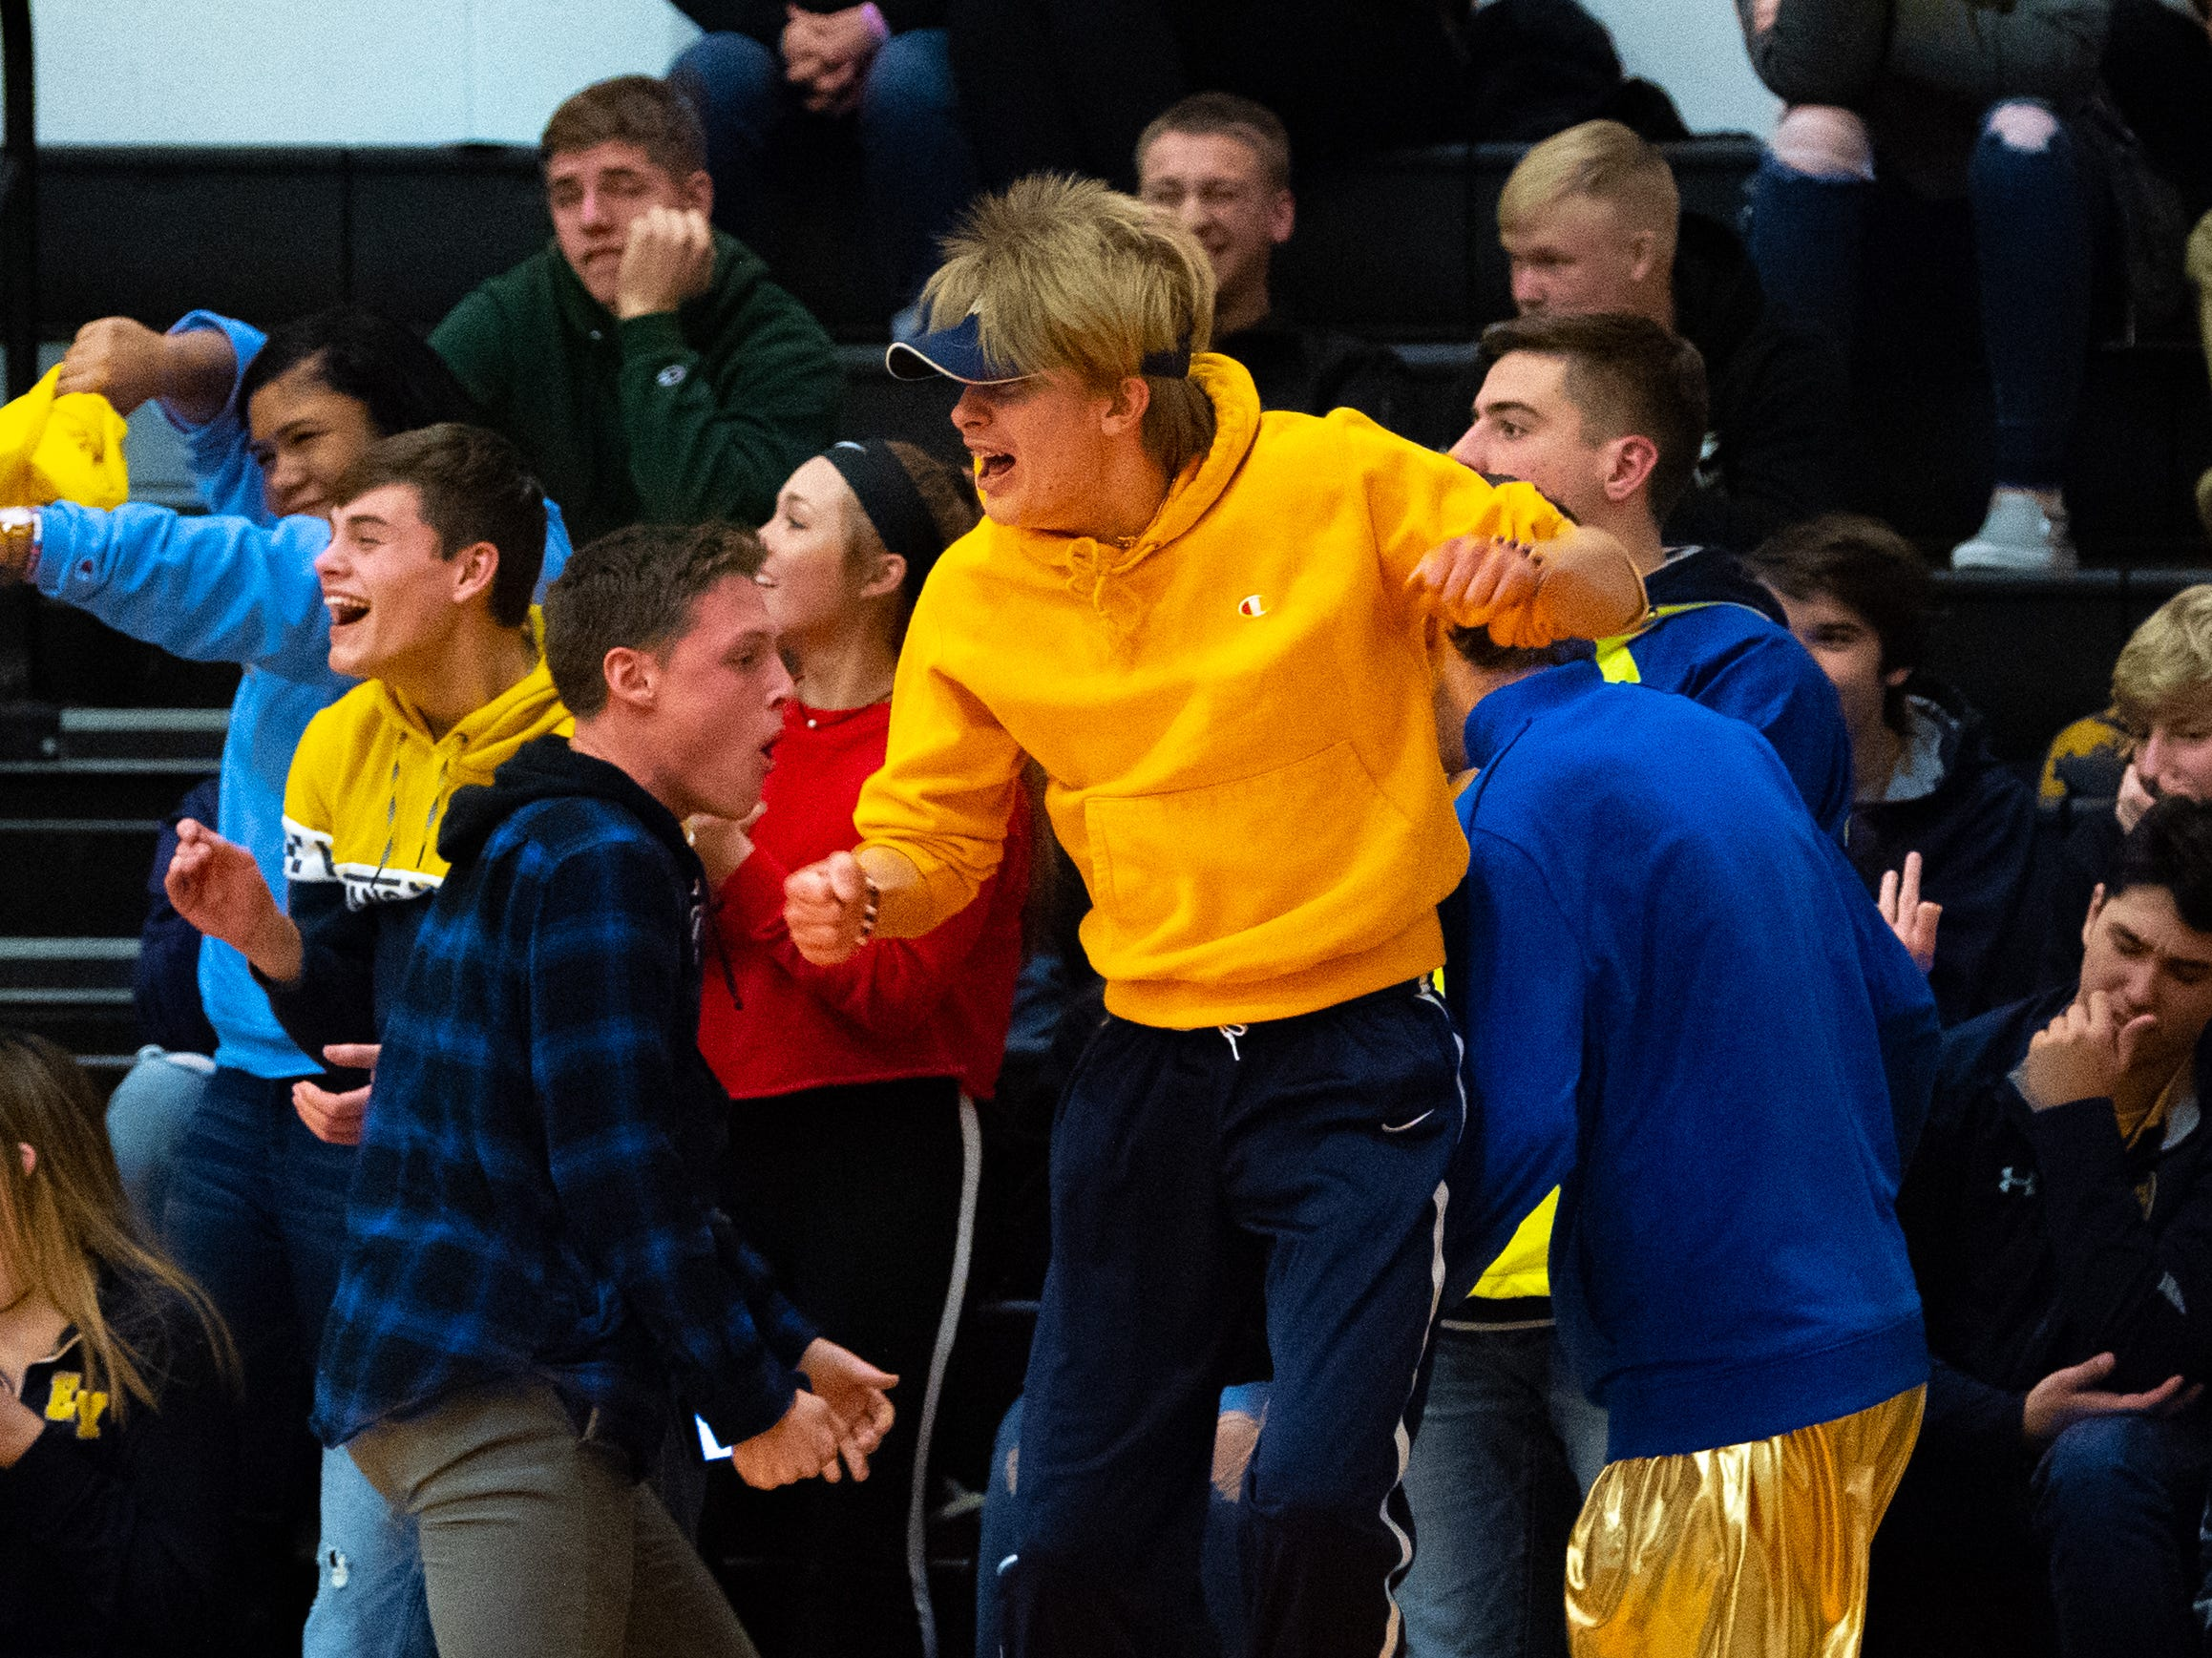 Eastern York students cheer on their team during the YAIAA Boys' basketball game between Northern York and Eastern York at Northeastern High School, Friday, December 7, 2018. The Polar Bears defeated the Knights 67 to 53.